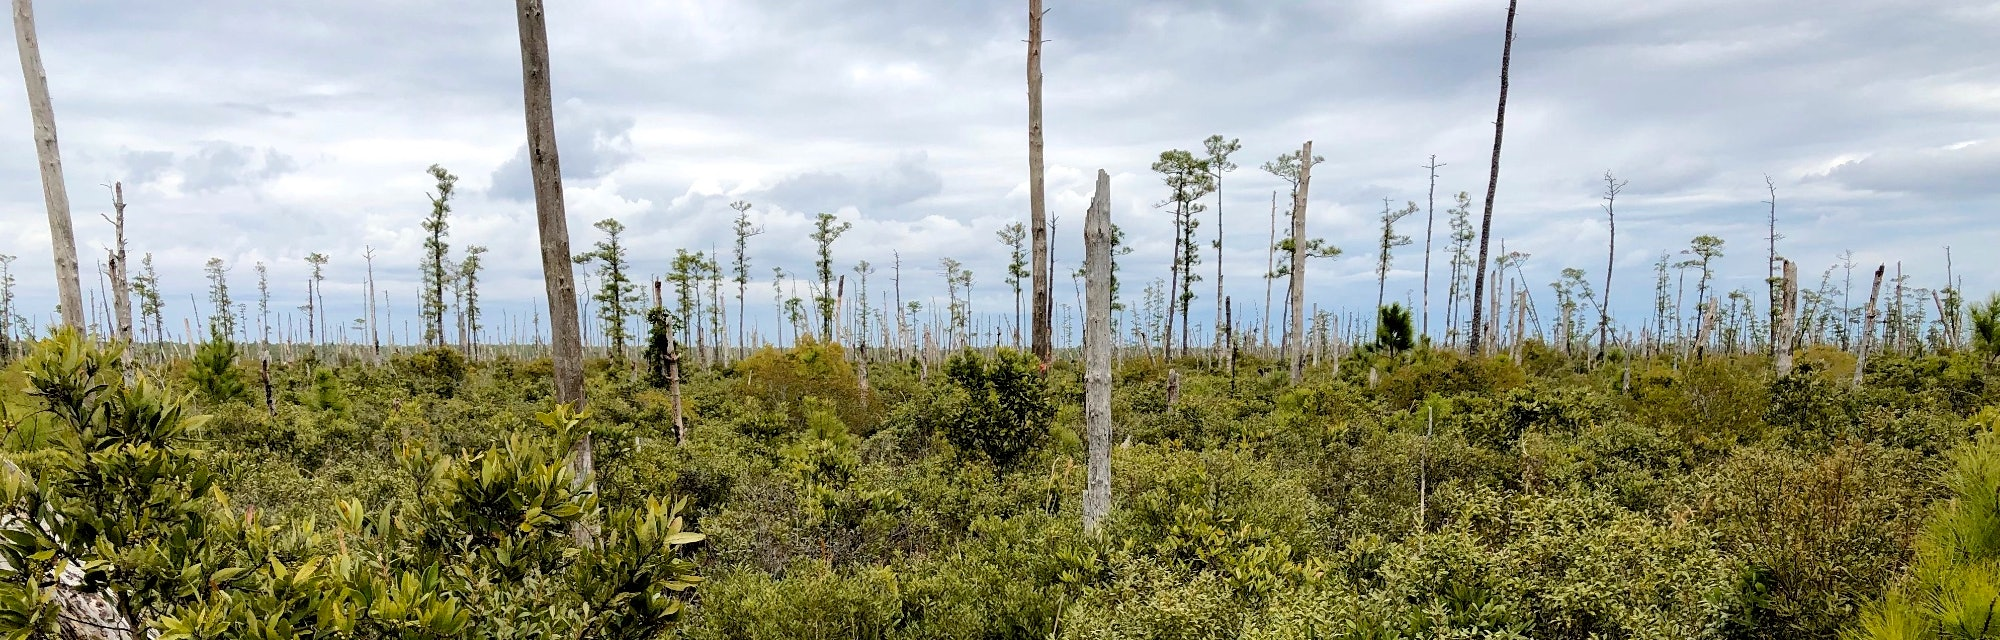 Ghost forest panorama in coastal North Carolina.